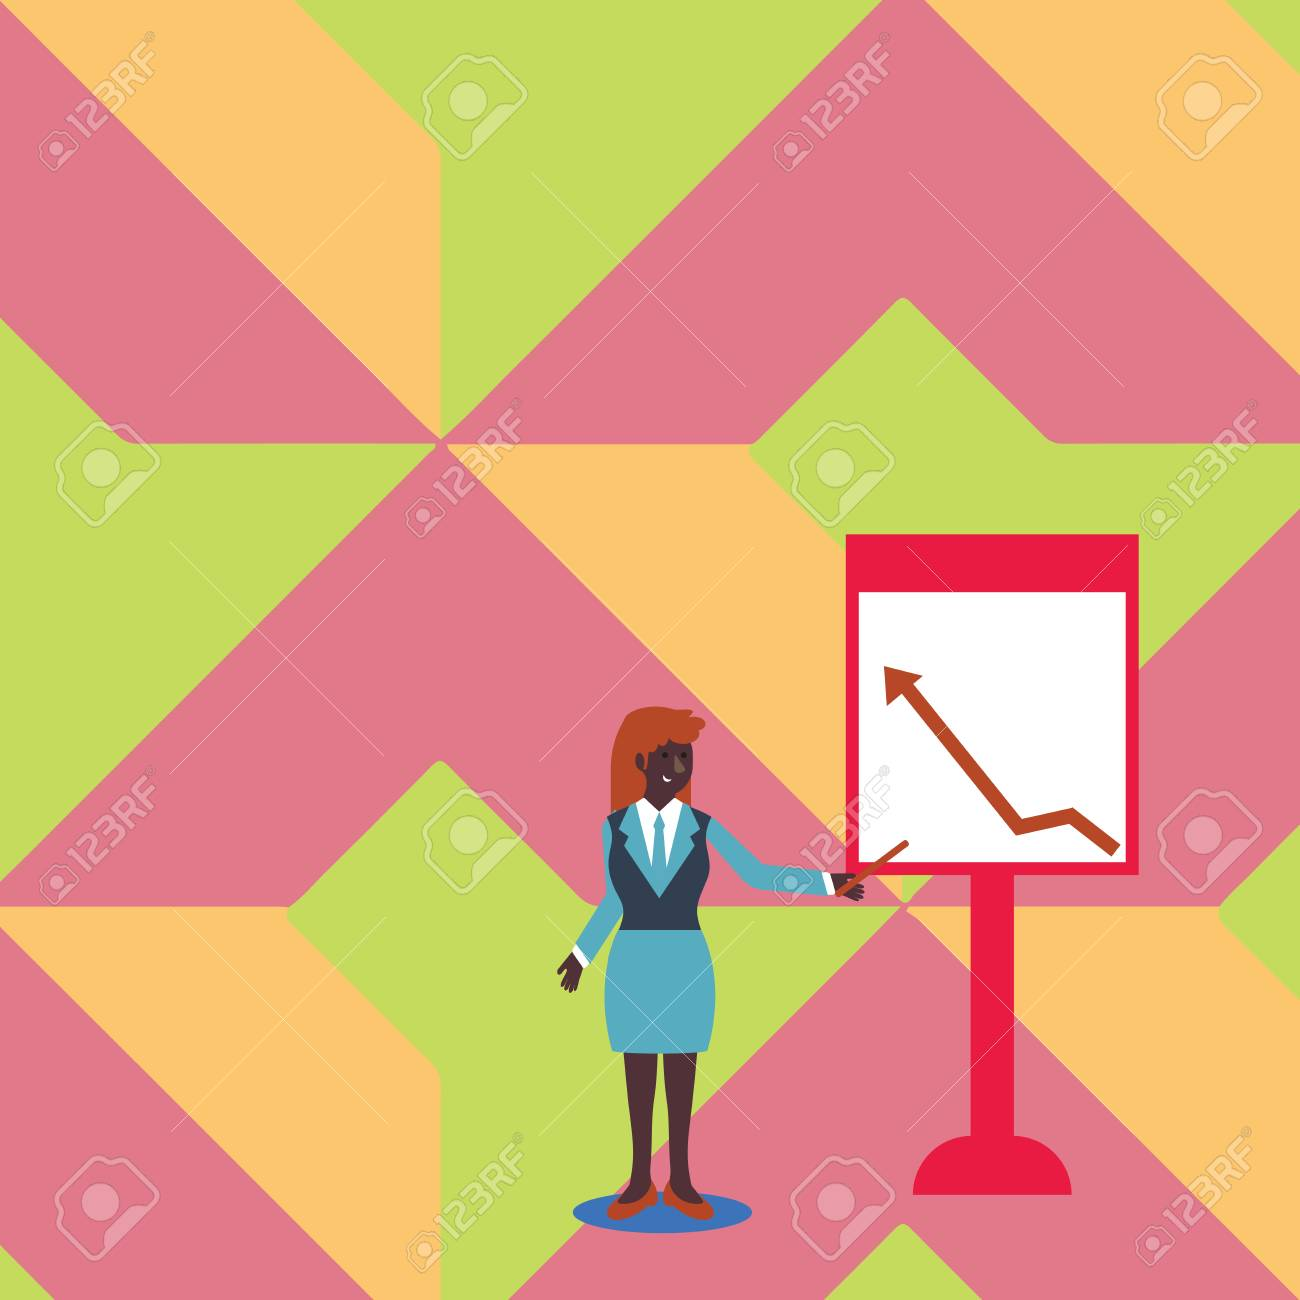 Businesswoman Holding Stick Pointing to Chart of Arrow Upward..